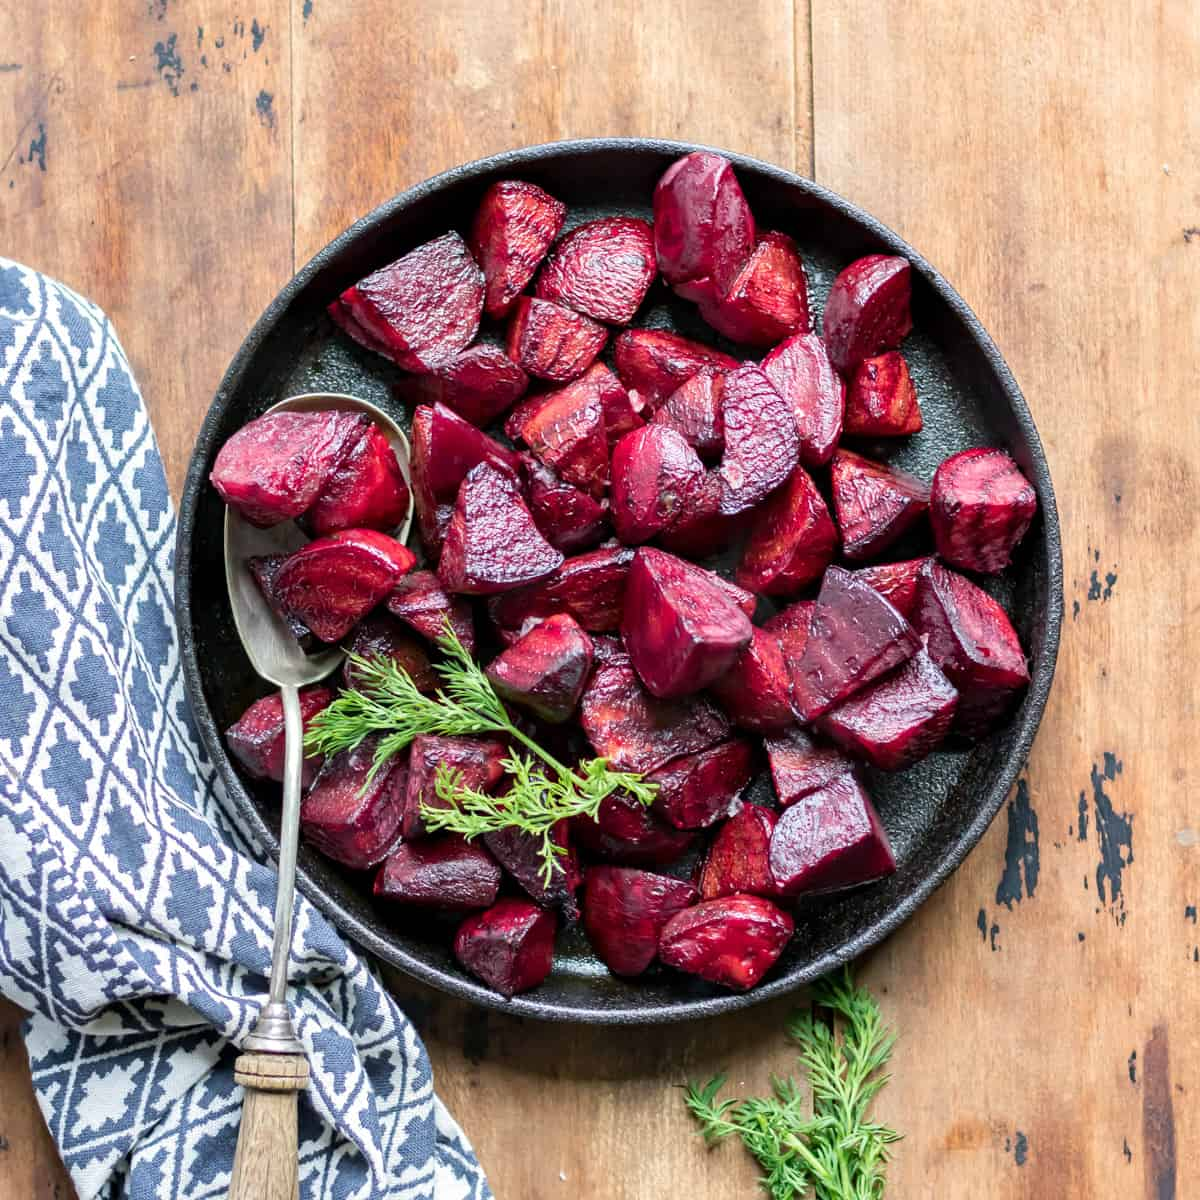 Serving dish of beets on a wooden table.